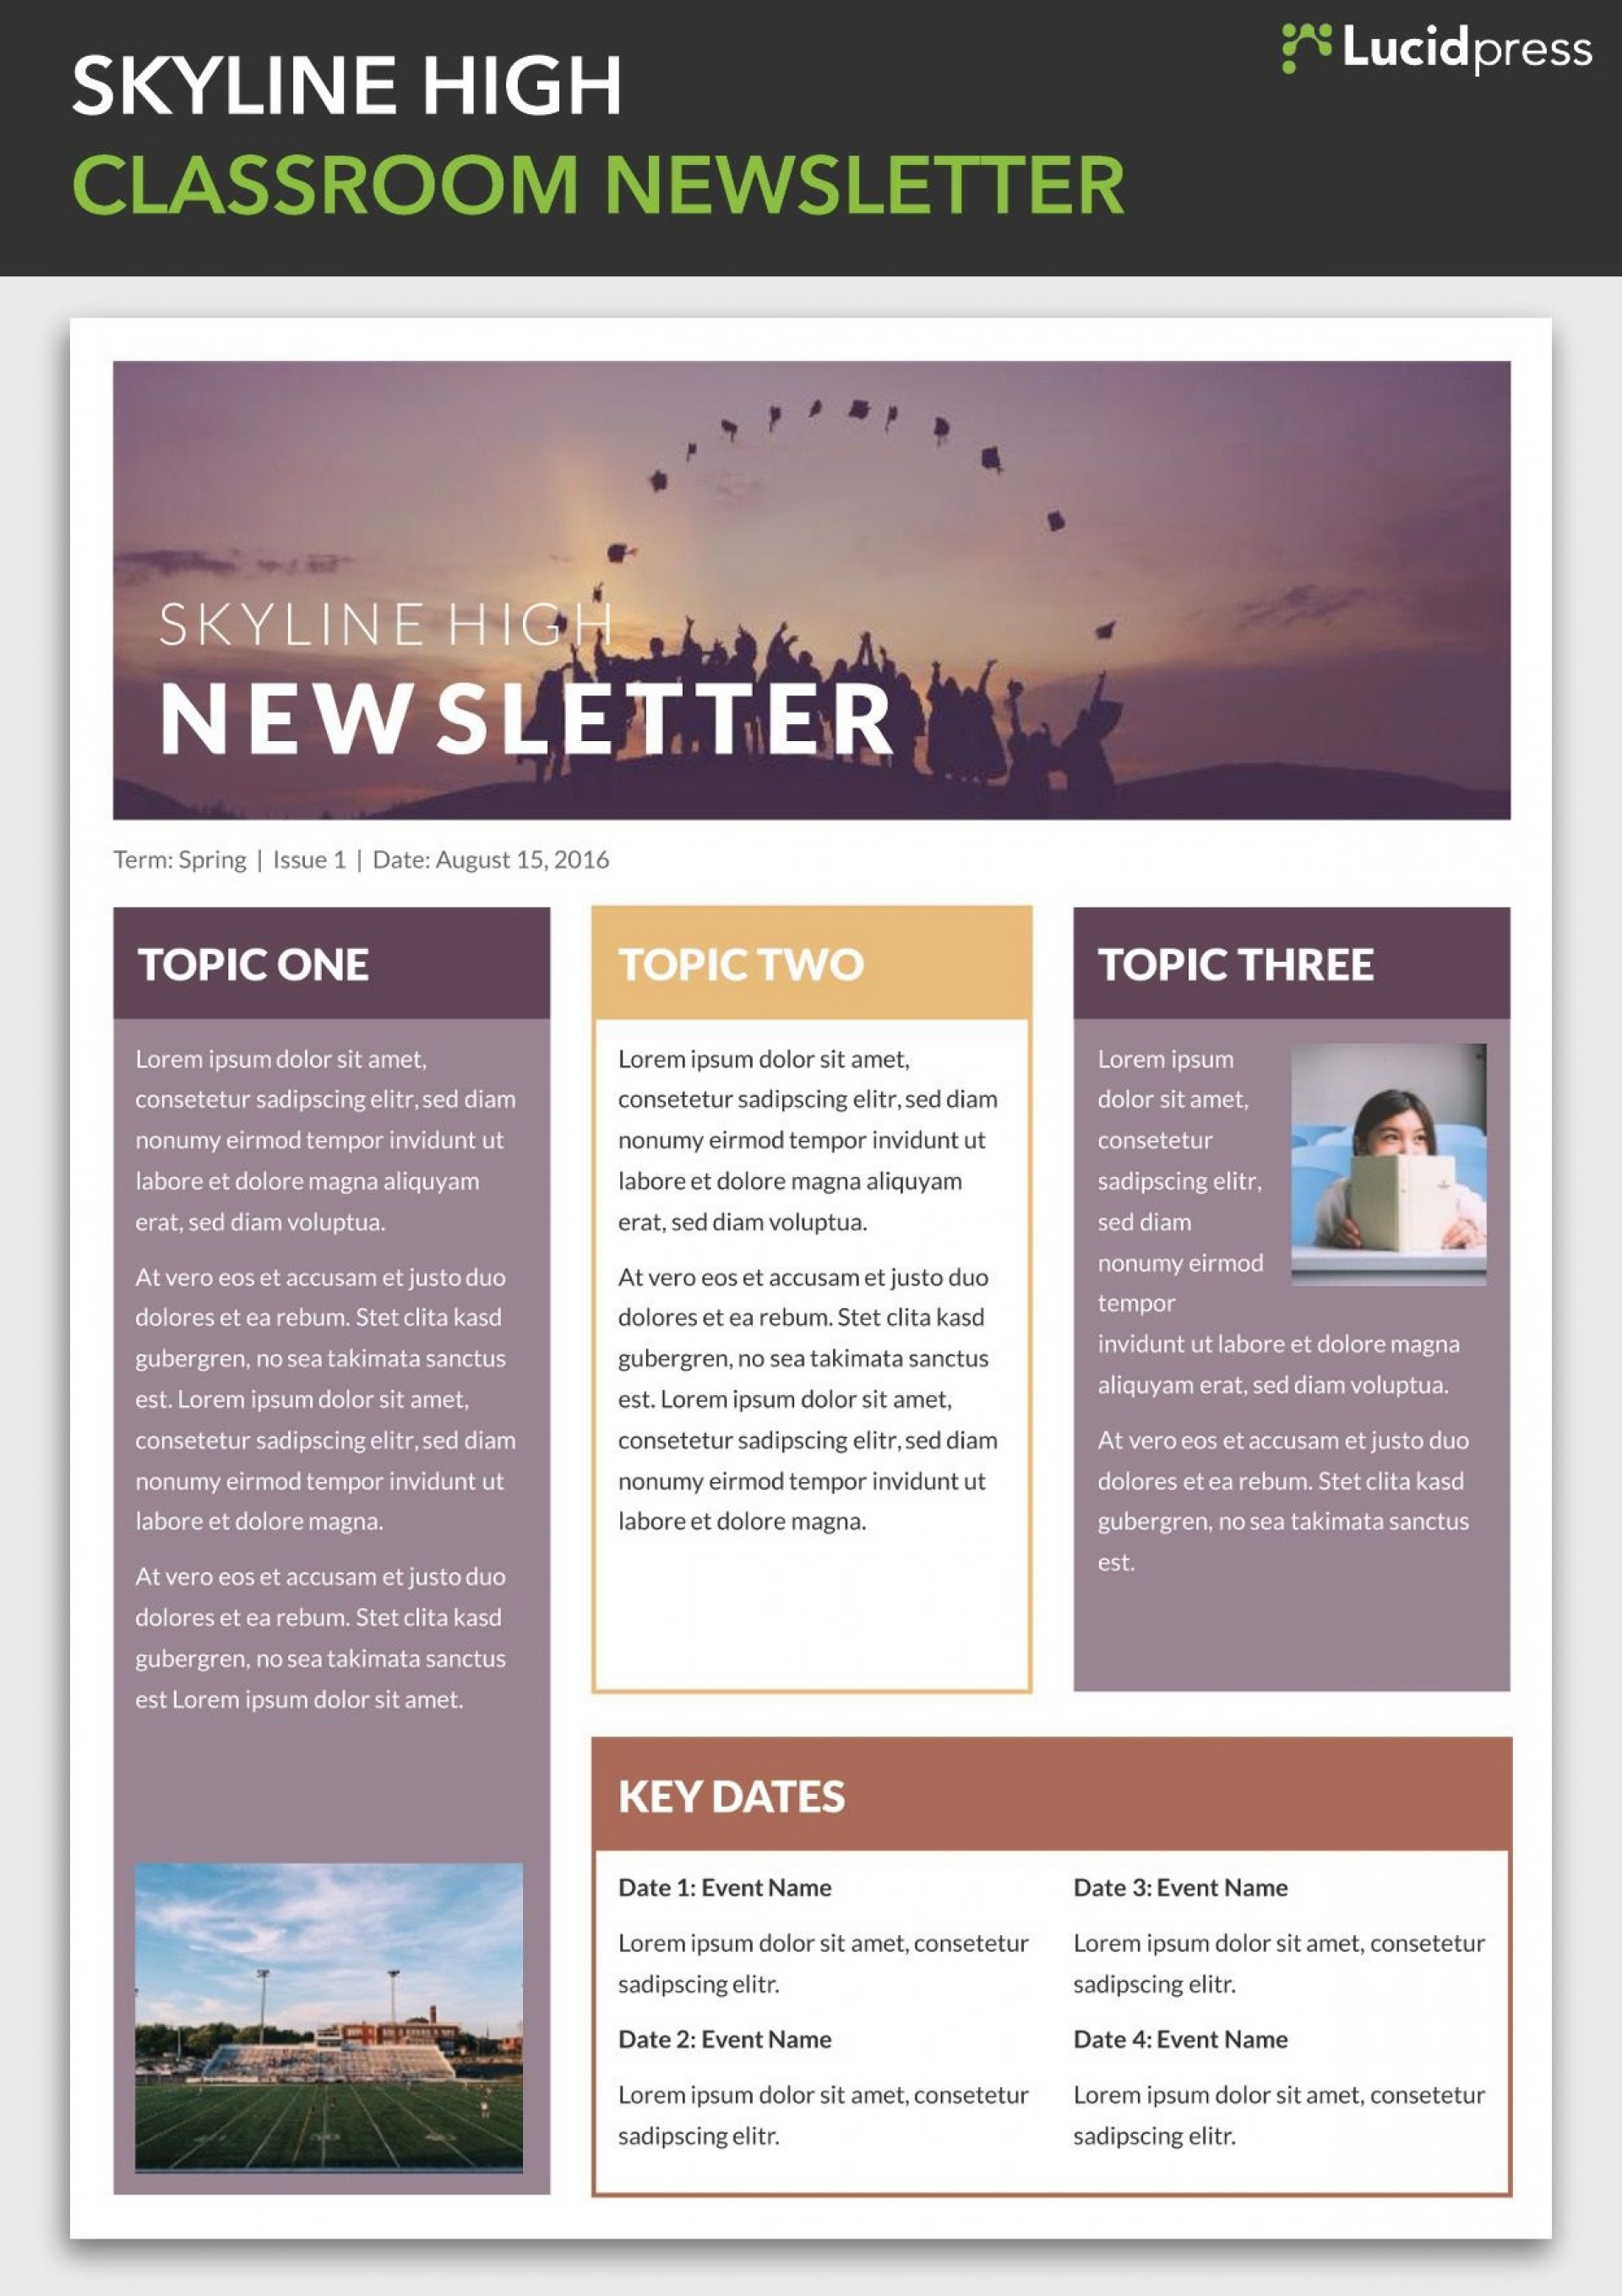 004 Simple School Newsletter Template Free Photo  Publisher Editable Counselor1920